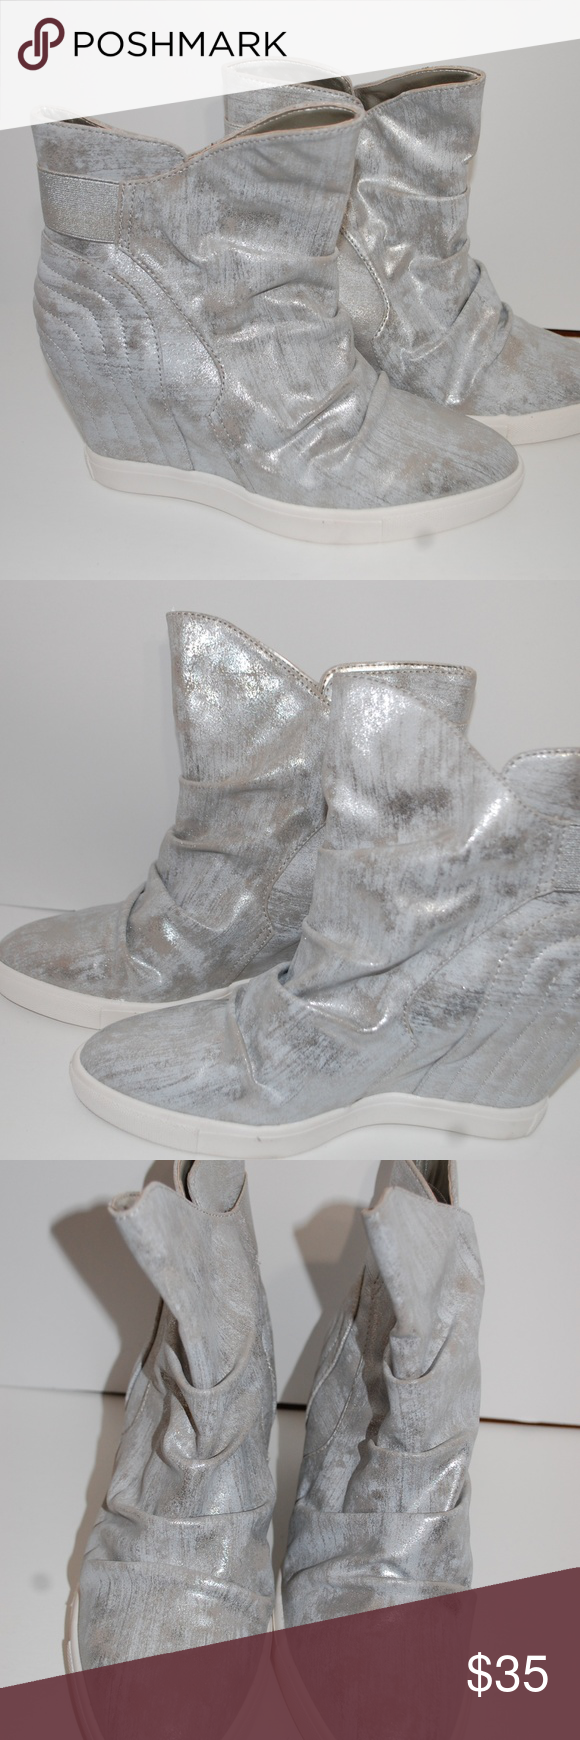 cbaeb78eb89a NWOB Jennifer Lopez Silver High Heel Wedge Booties NWOB Jennifer Lopez  Silver High Heel Wedge Booties Frannie Silver Jennifer Lopez Shoes Ankle  Boots   ...